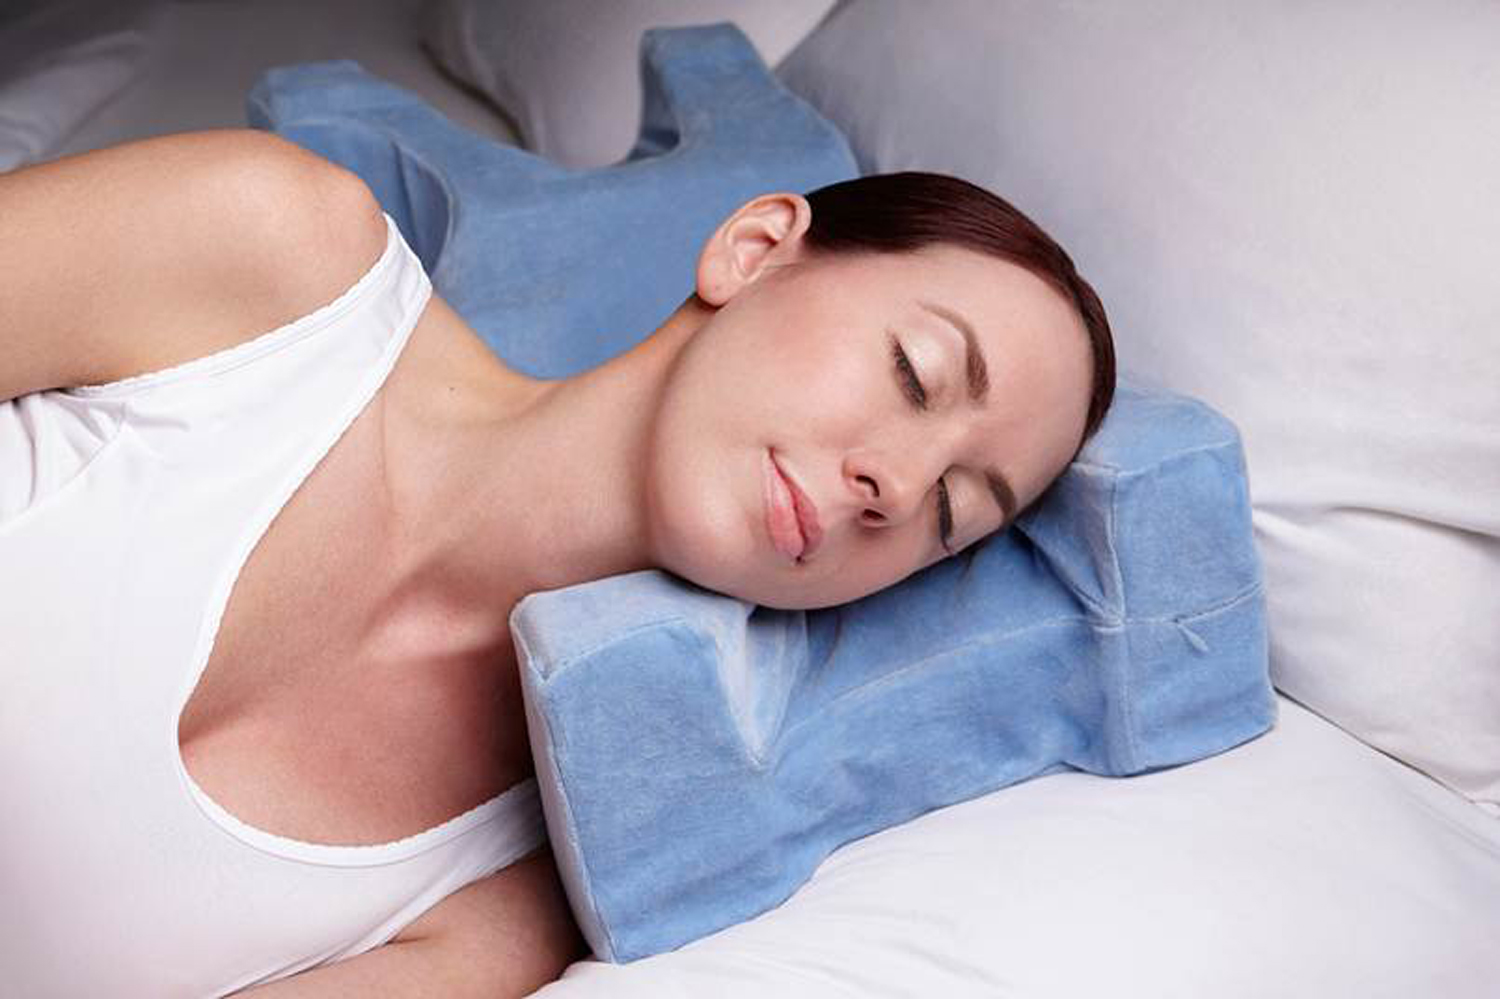 JuveRest, a Sleep Wrinkle Prevention Pillow